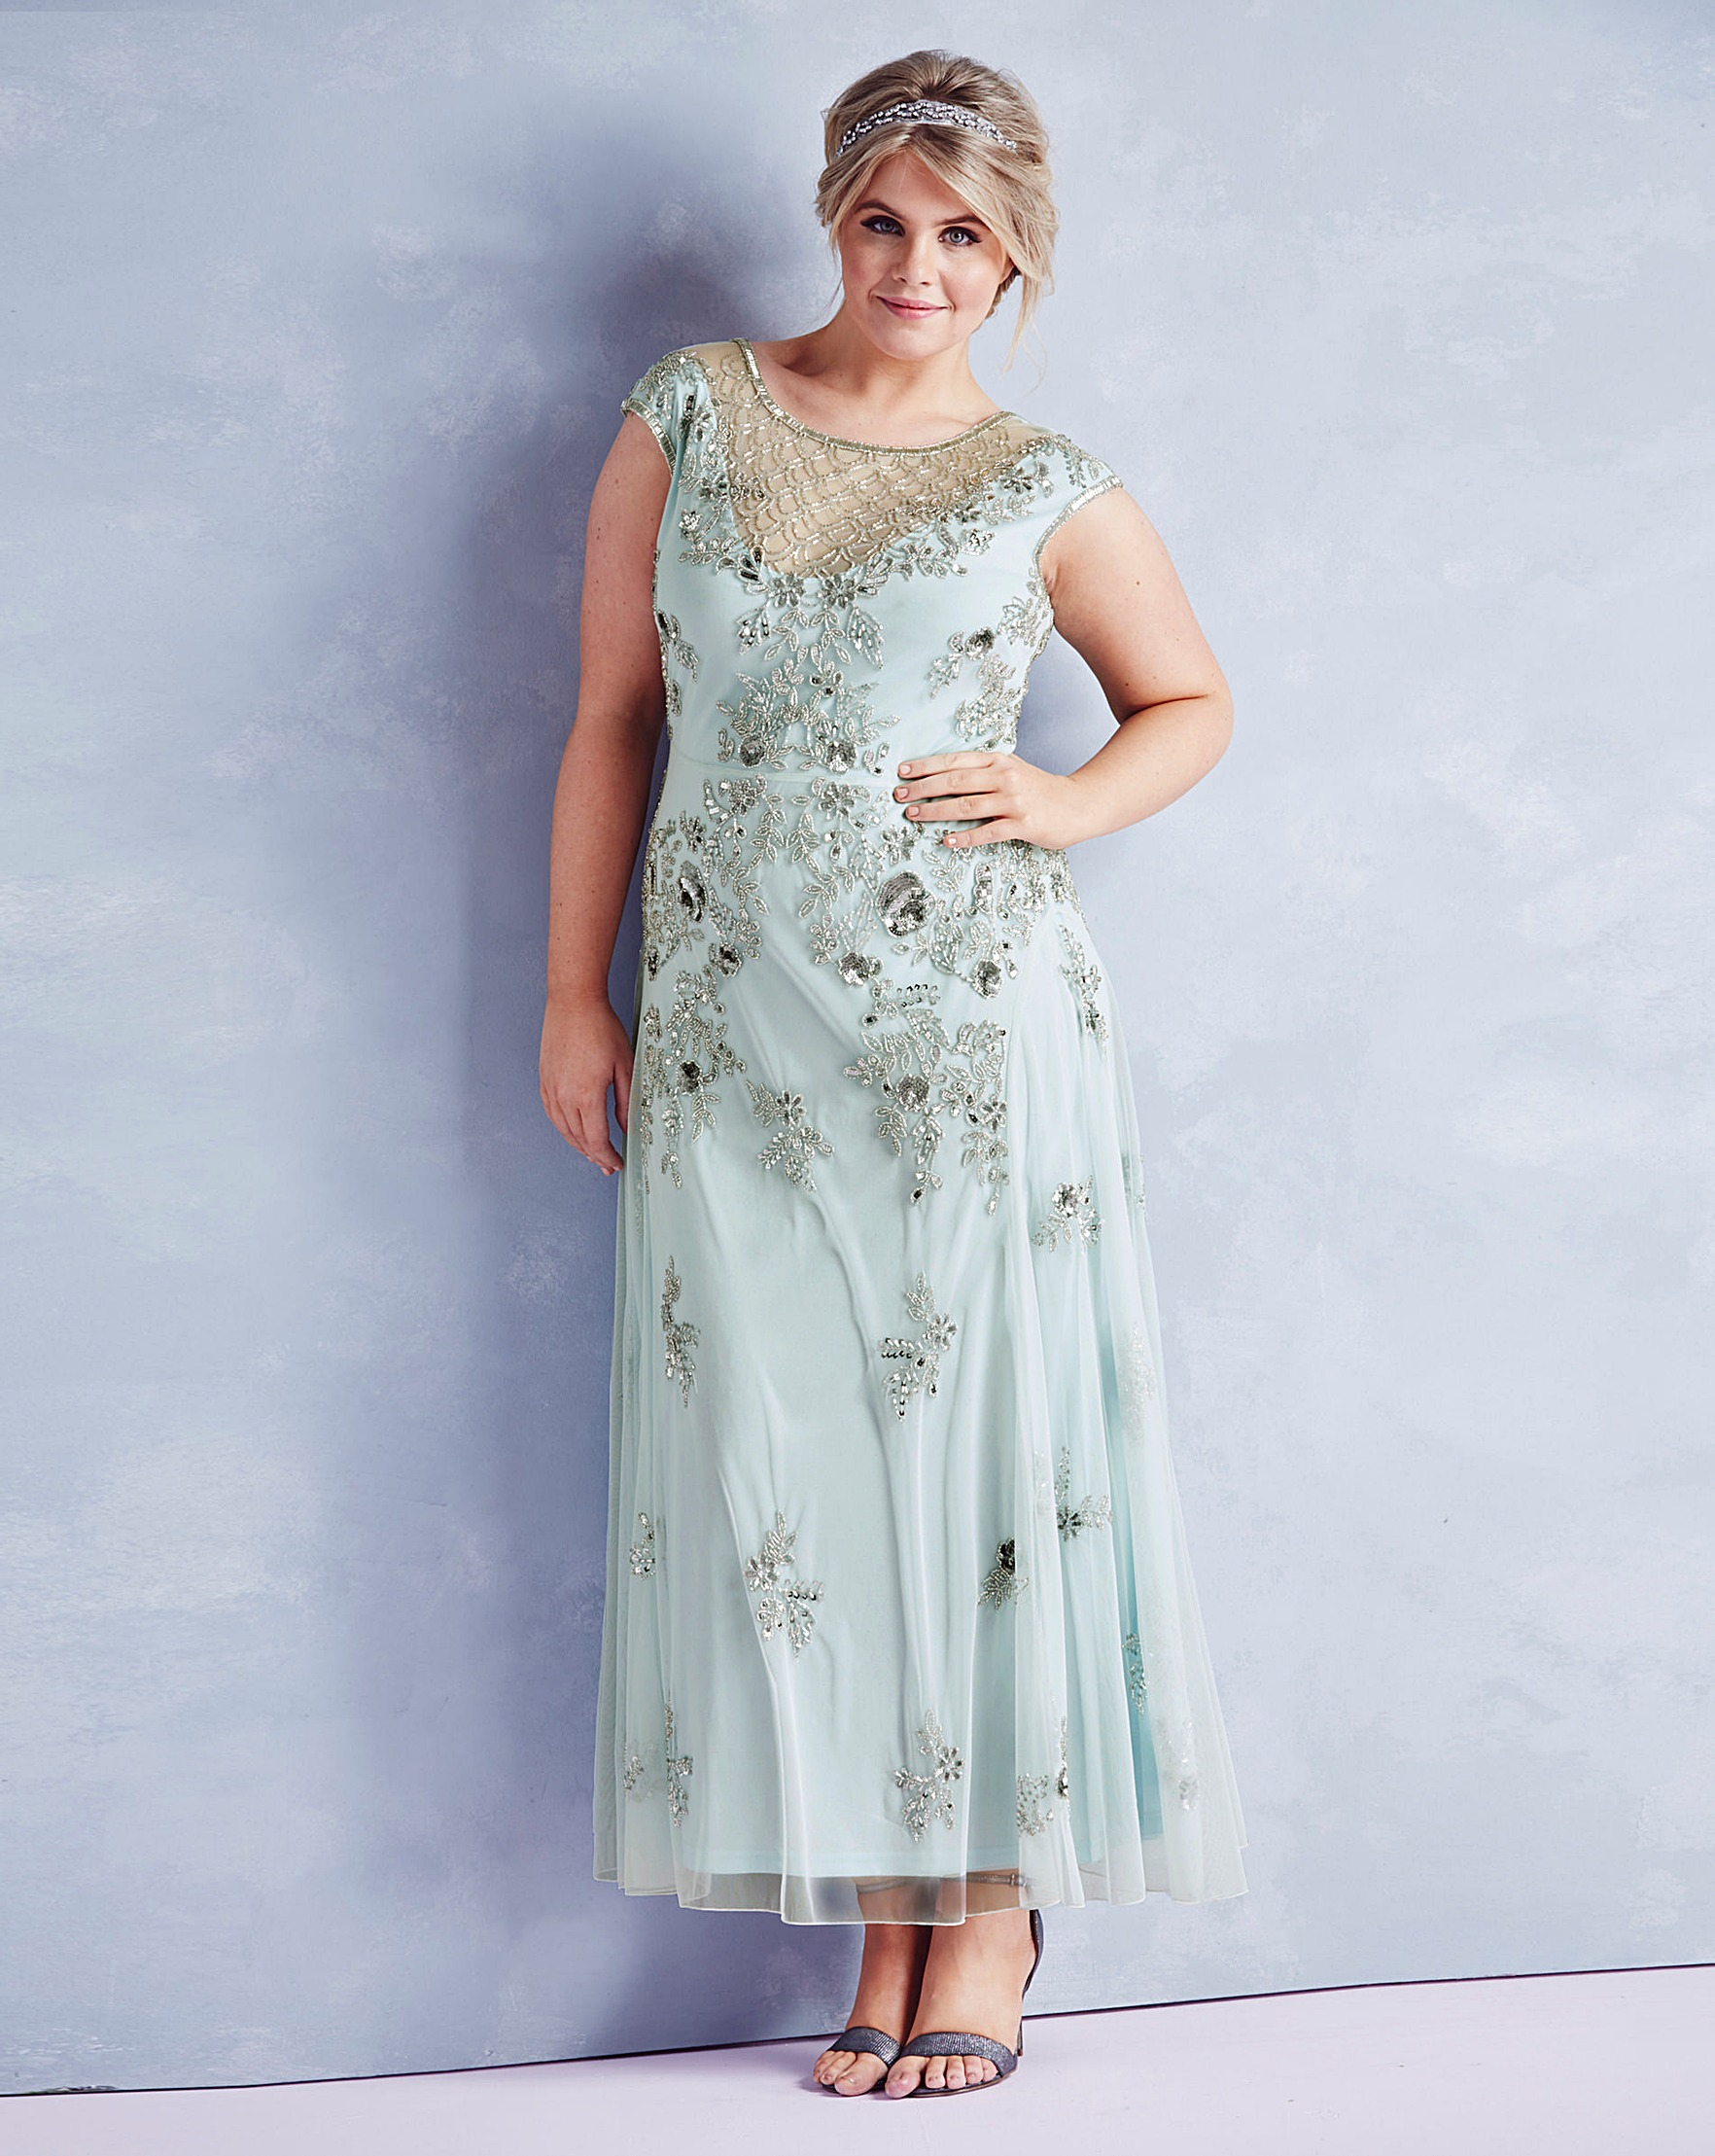 JOANNA HOPE Embellished Maxi Dress | Simply Be